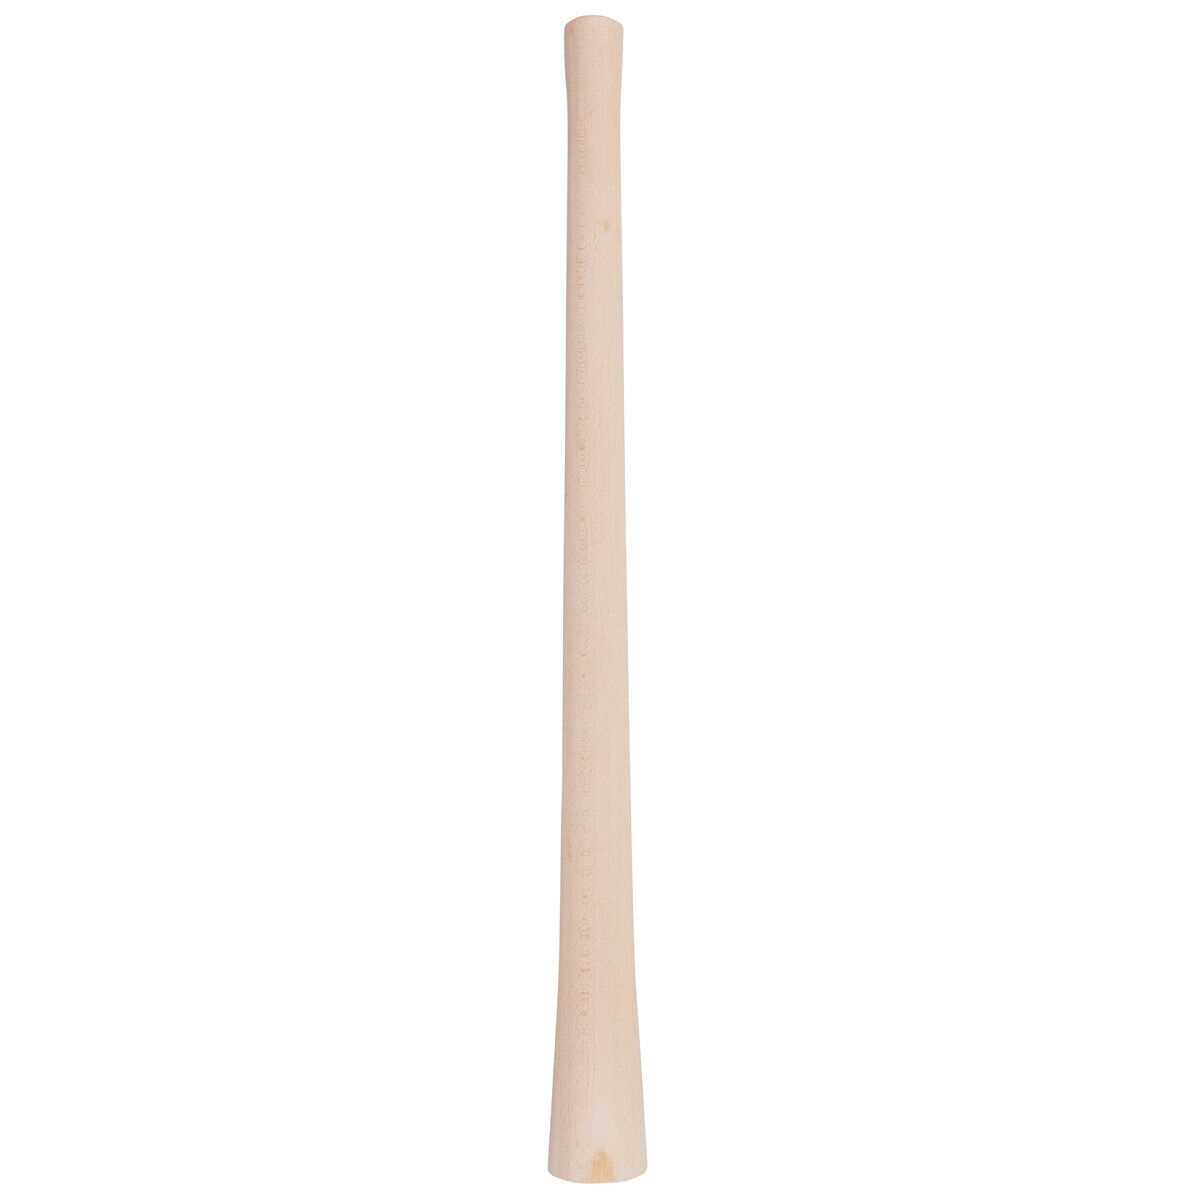 Hardwood Replacement Handle Shaft Wood for Pick Axe Grubbing Mattock 90cm 36in